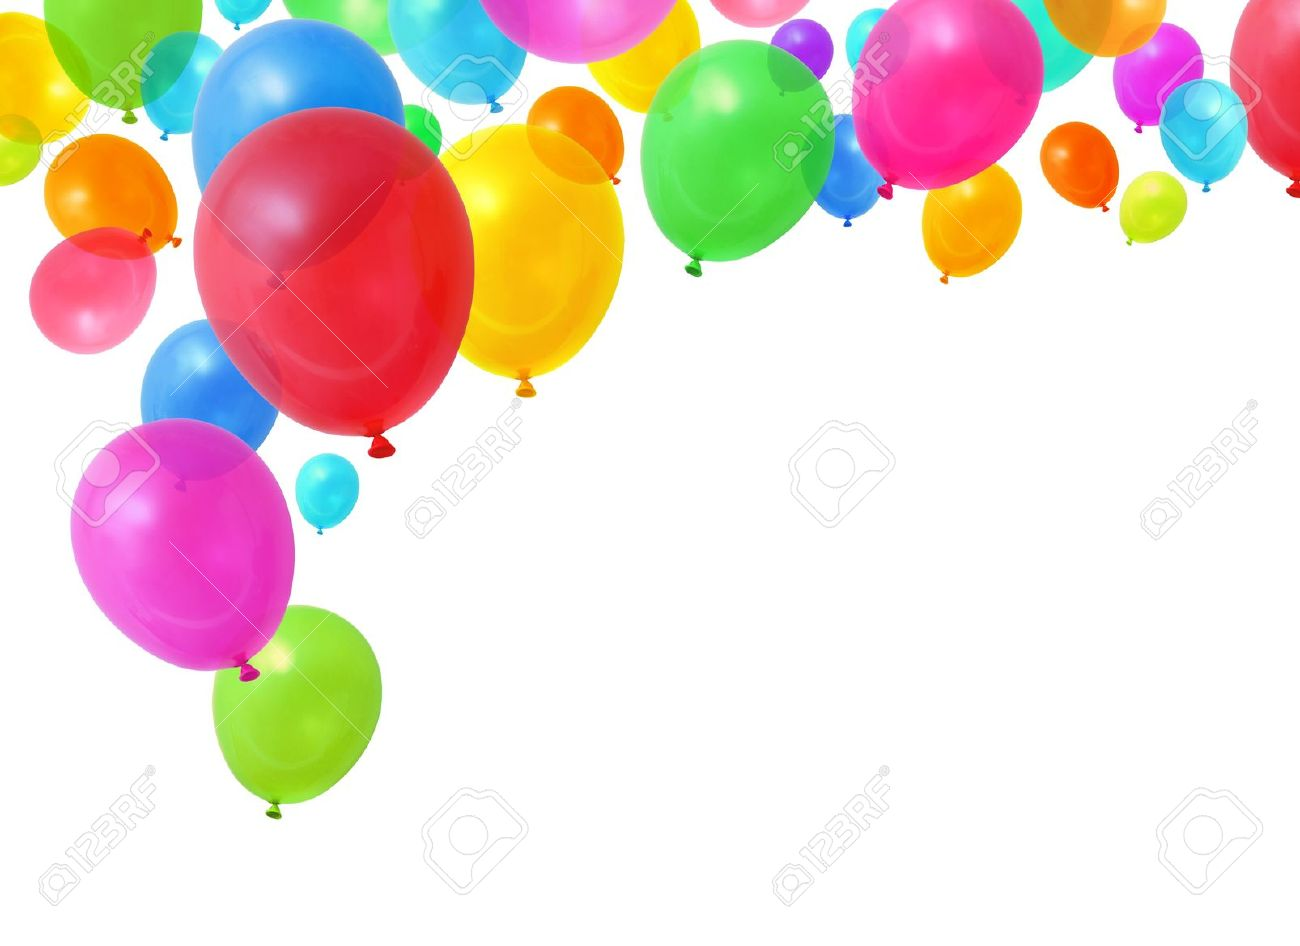 Colorful Birthday Party Balloons Flying On White Background Stock